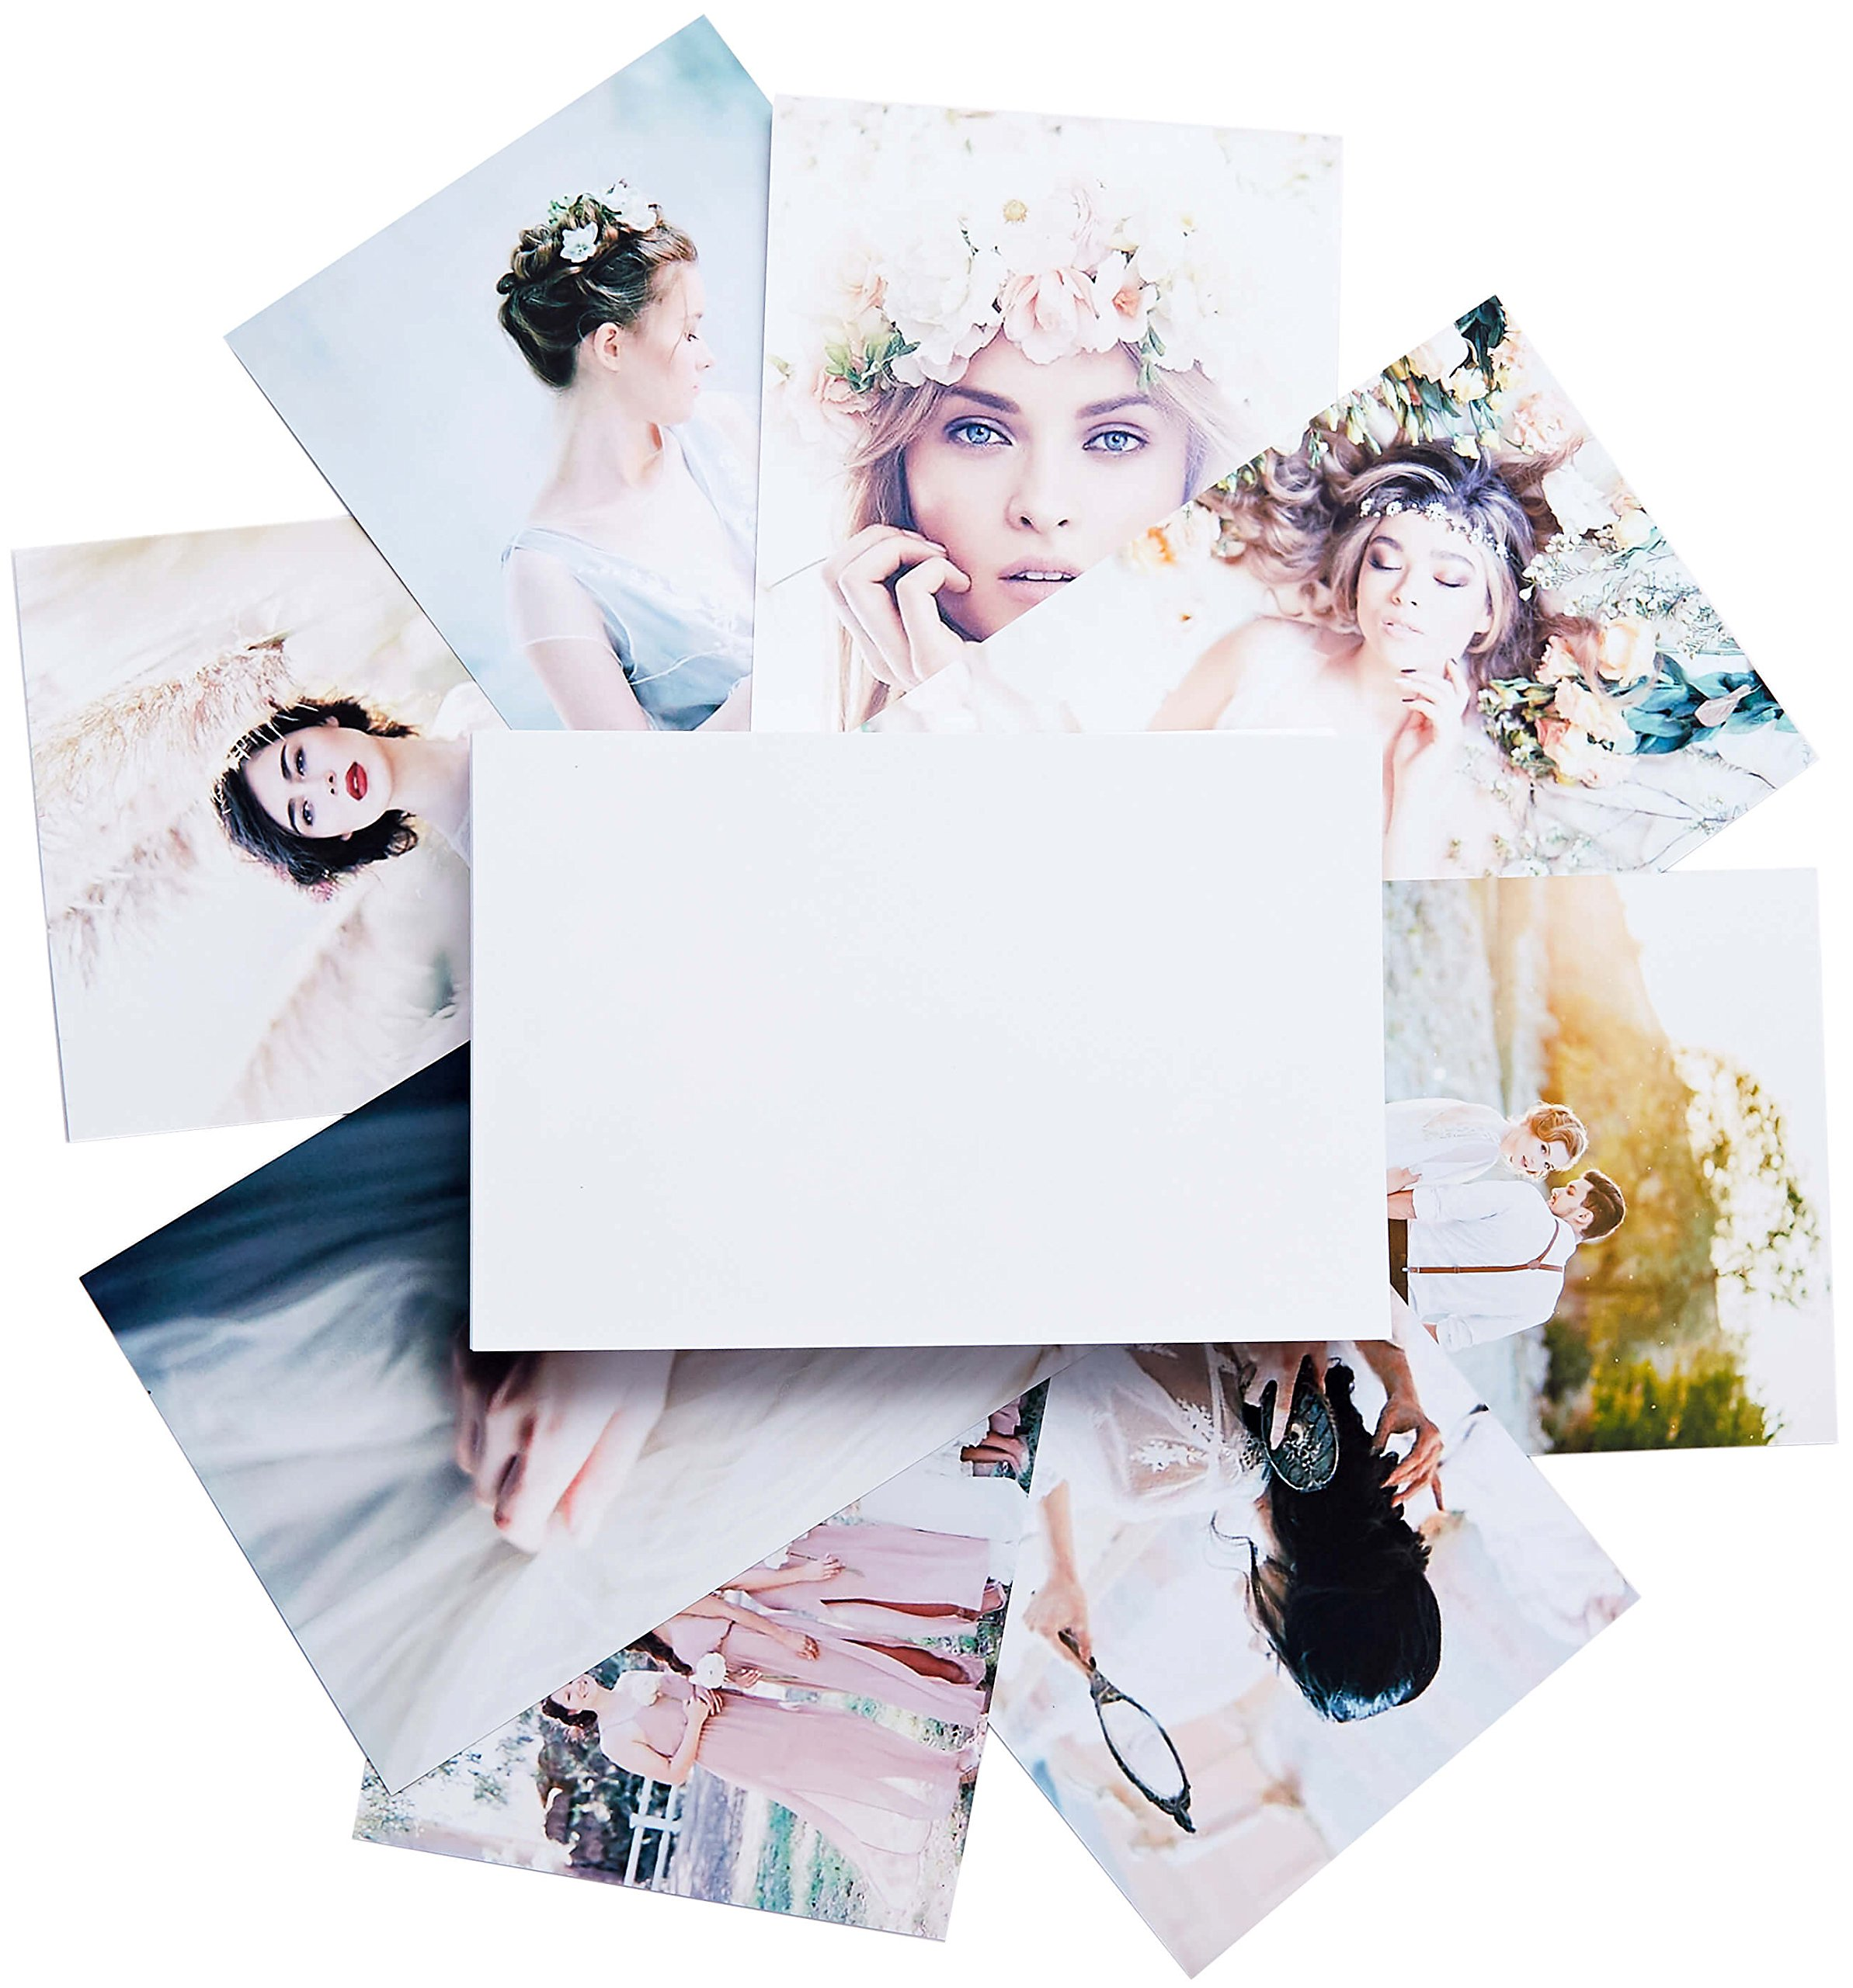 Printerry Matte Photo Paper 4 x 6 Inches (500 Sheets) 58lbs/220gsm, Double Sided by Printerry